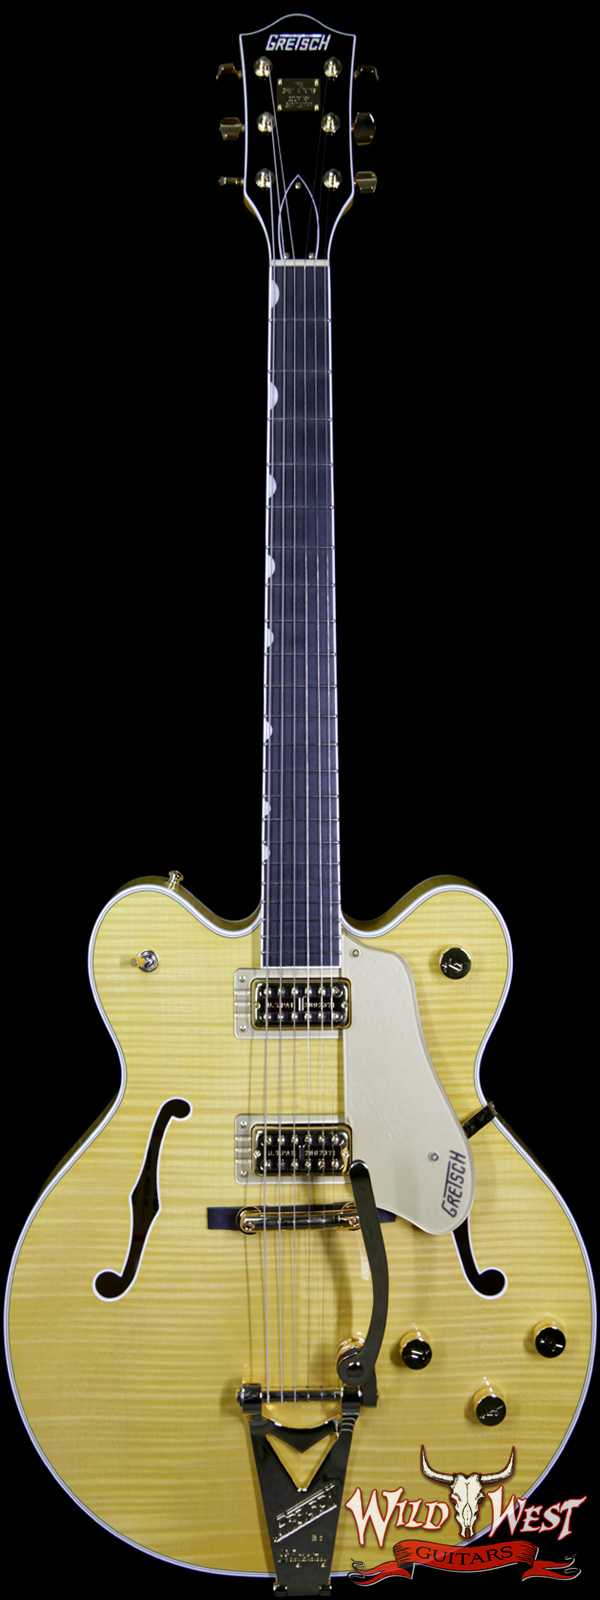 Gretsch G6122TFM Players Edition Country Gentleman with Bigsby Filter Tron Pickups Amber Stain